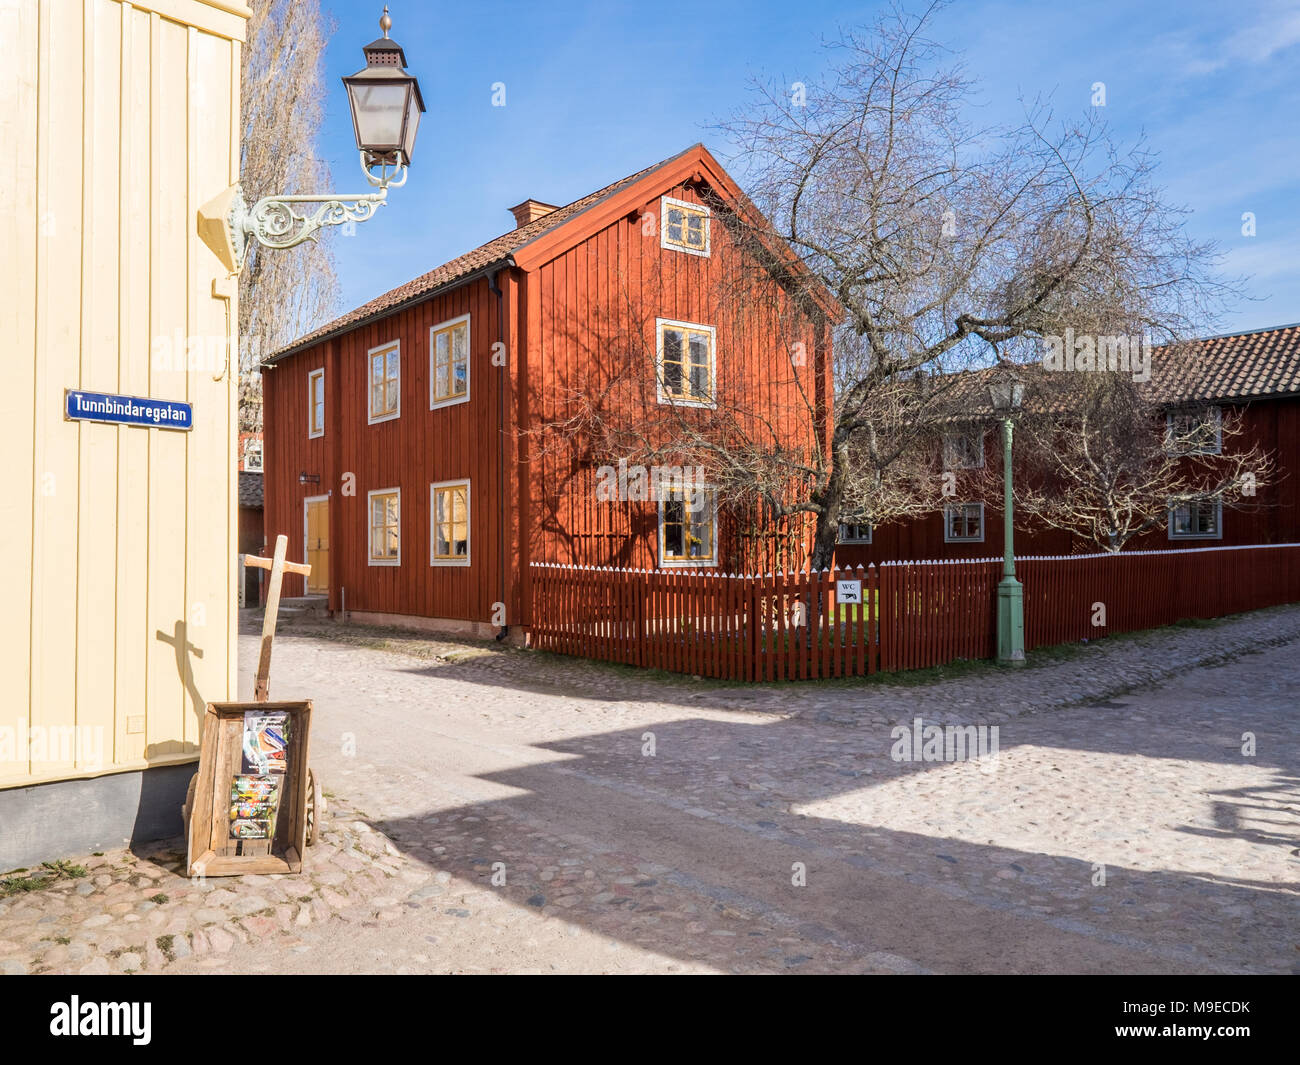 Open-air museum Old Linköping during early spring in Sweden - Stock Image